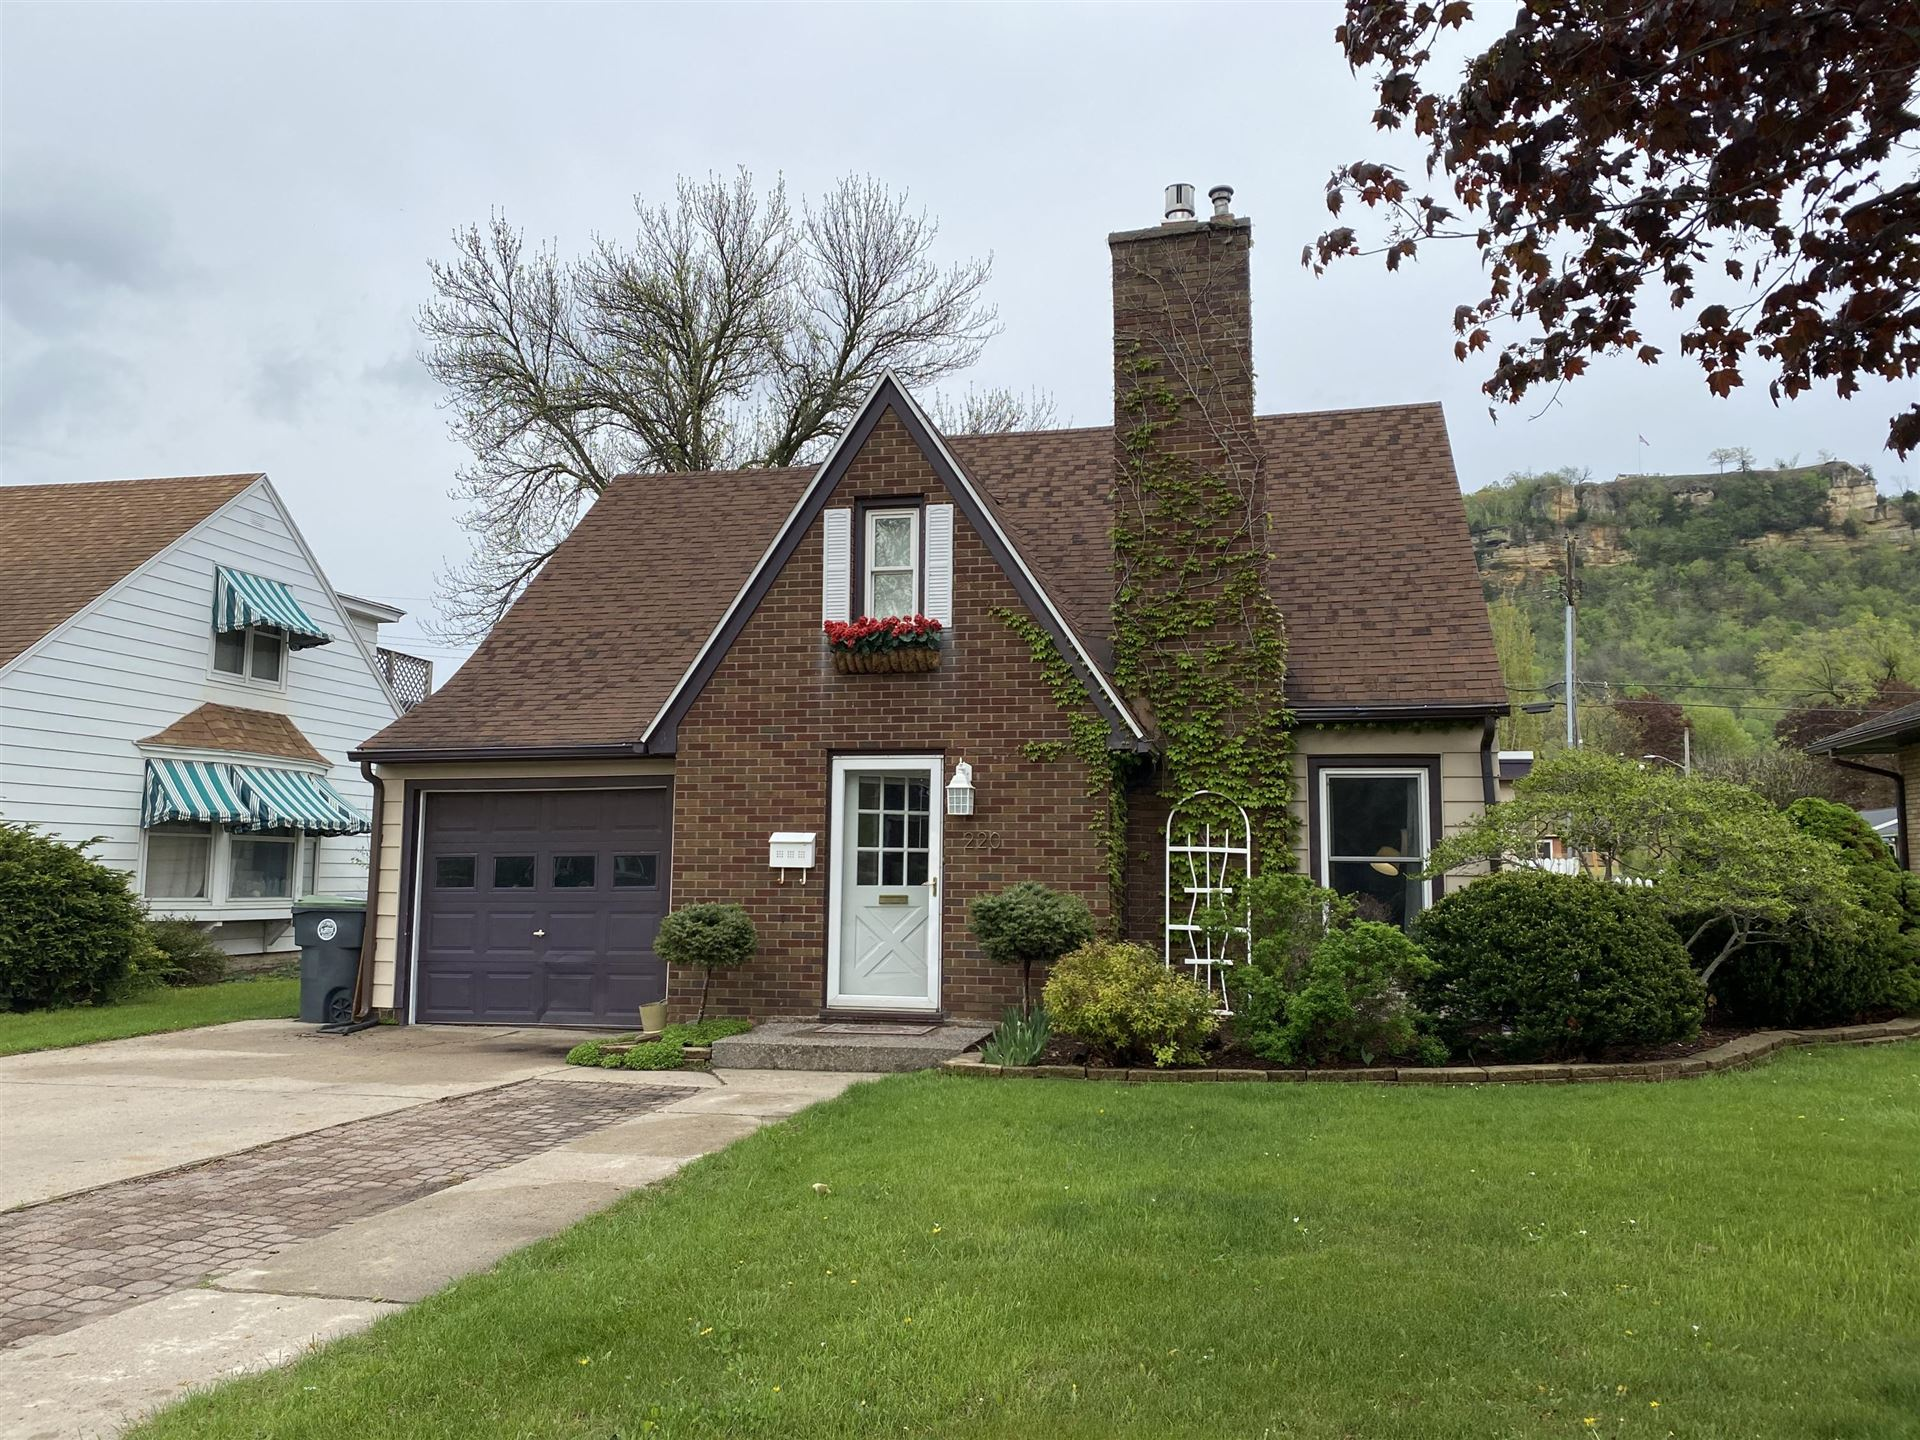 220 Losey Blvd N, La Crosse, WI 54601 - MLS#: 1738413